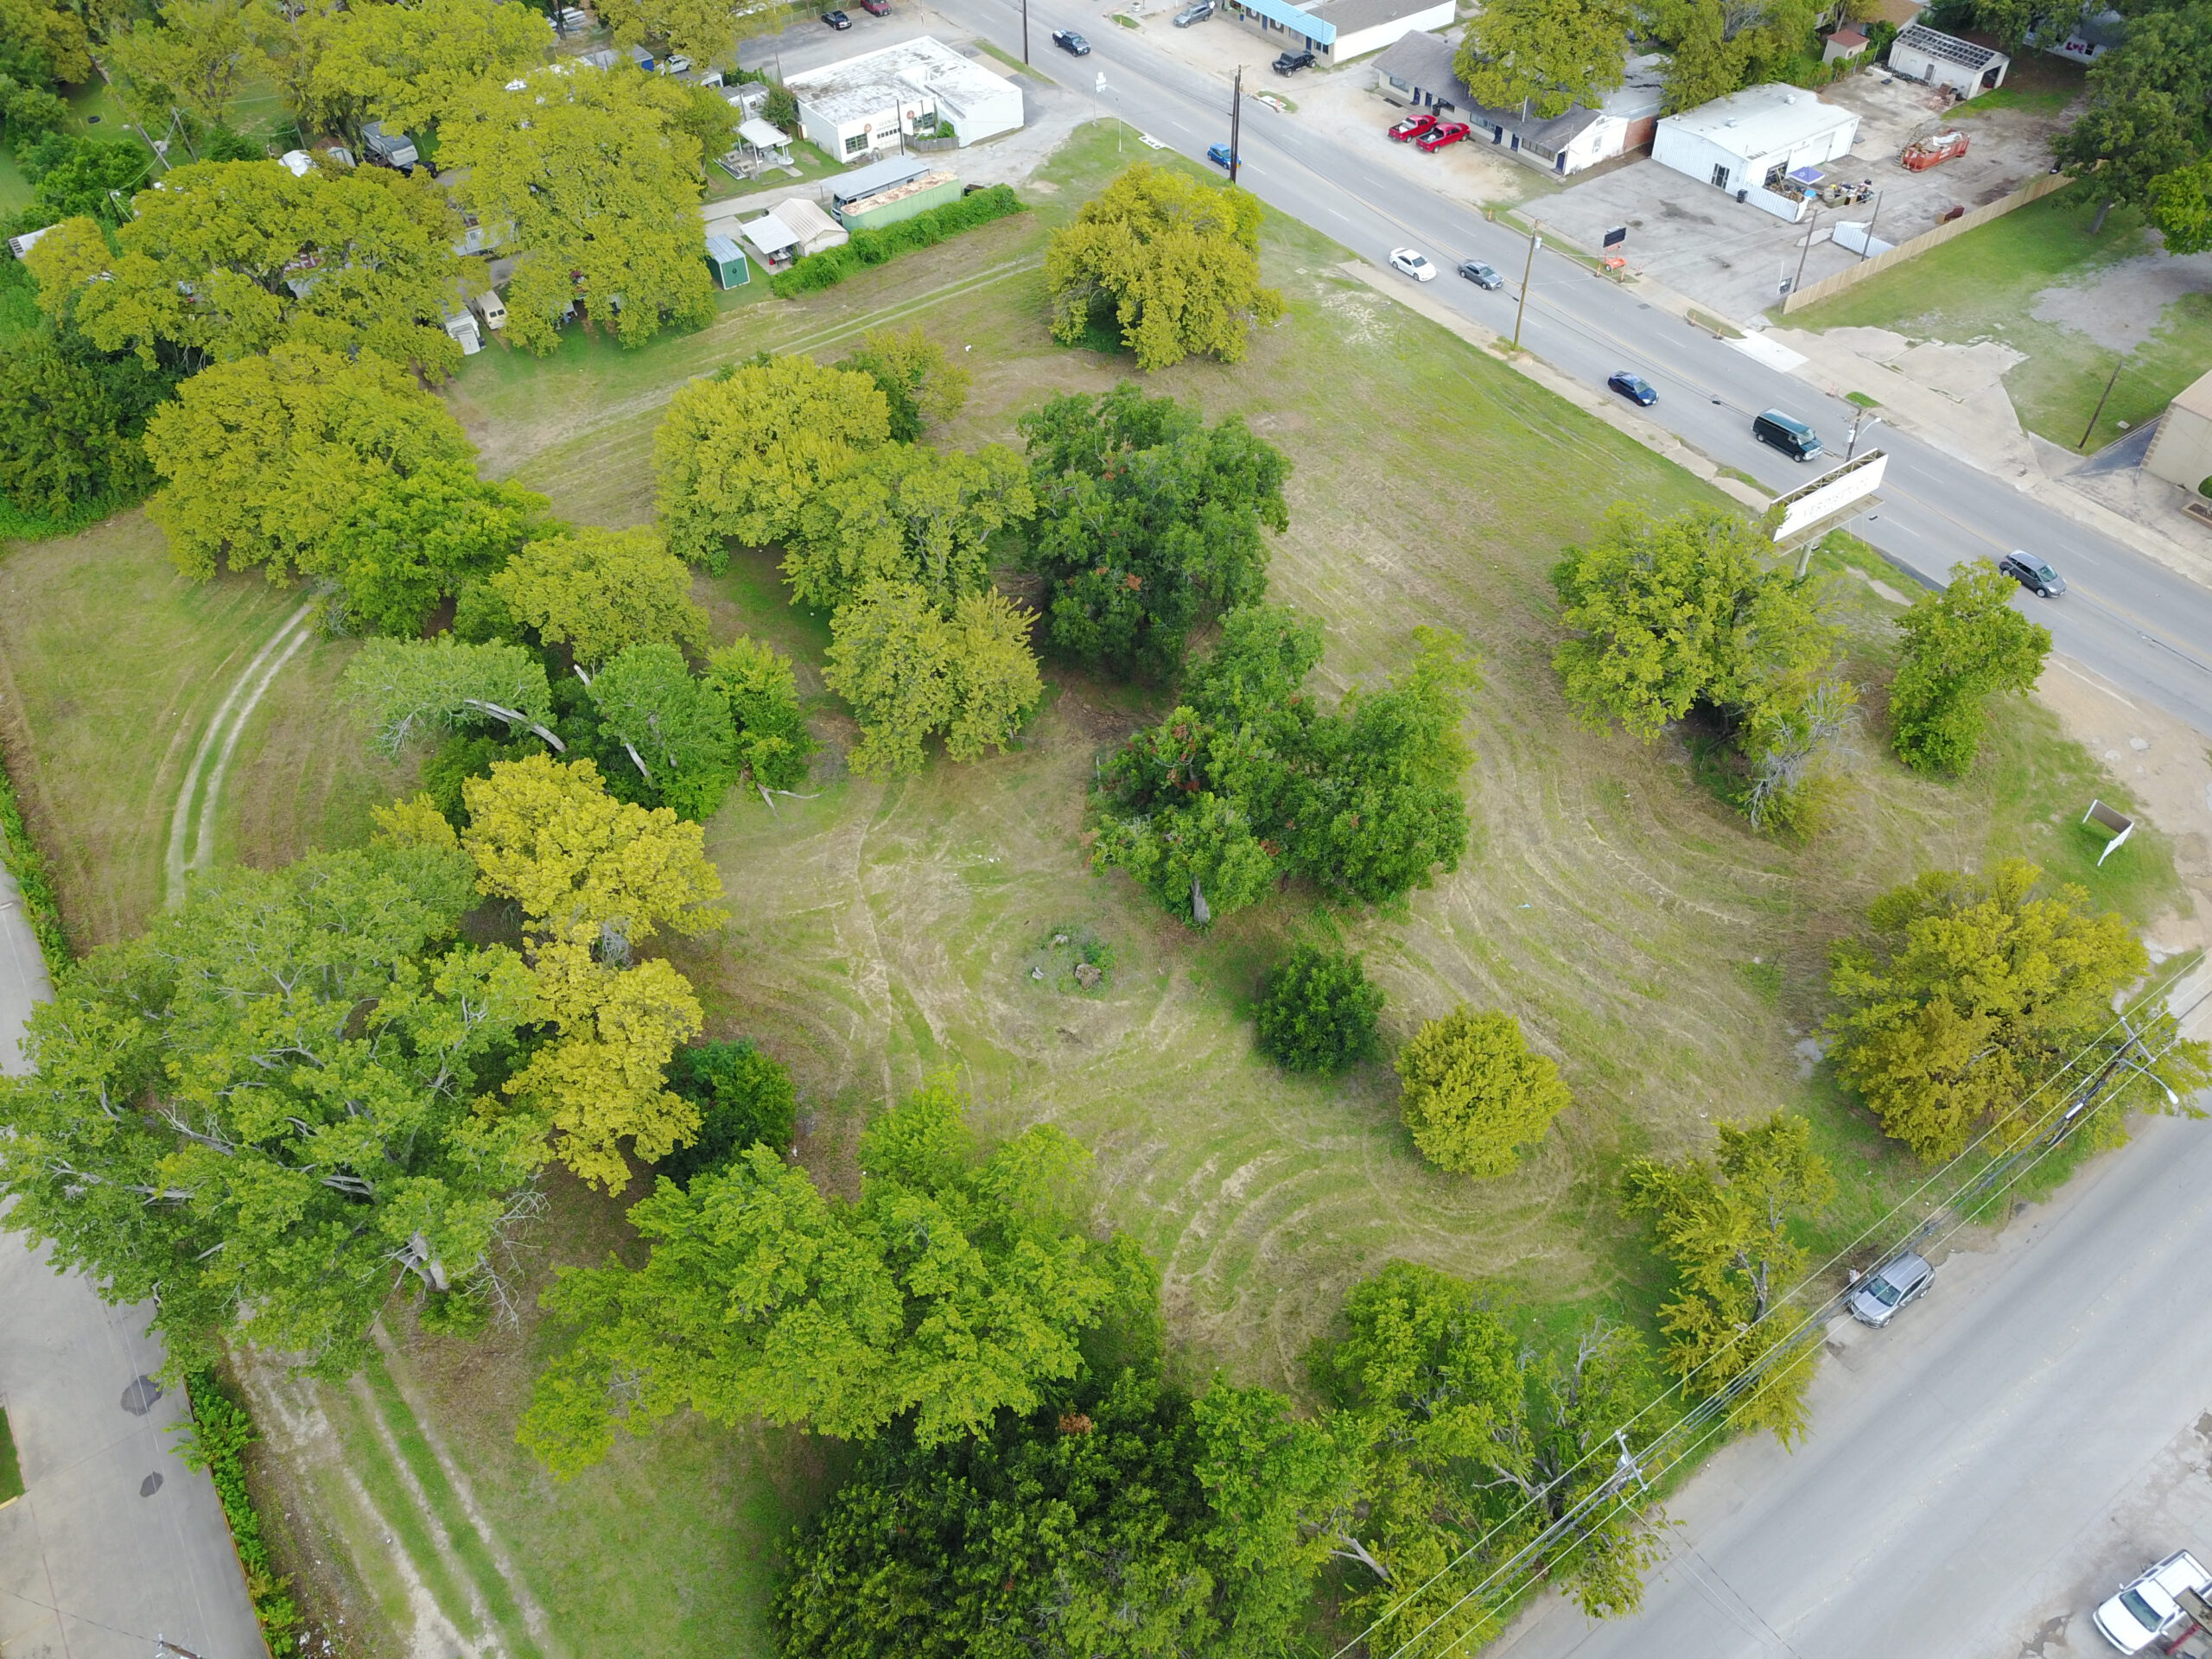 Birds-eye view of a grassy, square plot of land with numerous light and dark green trees throughout the land